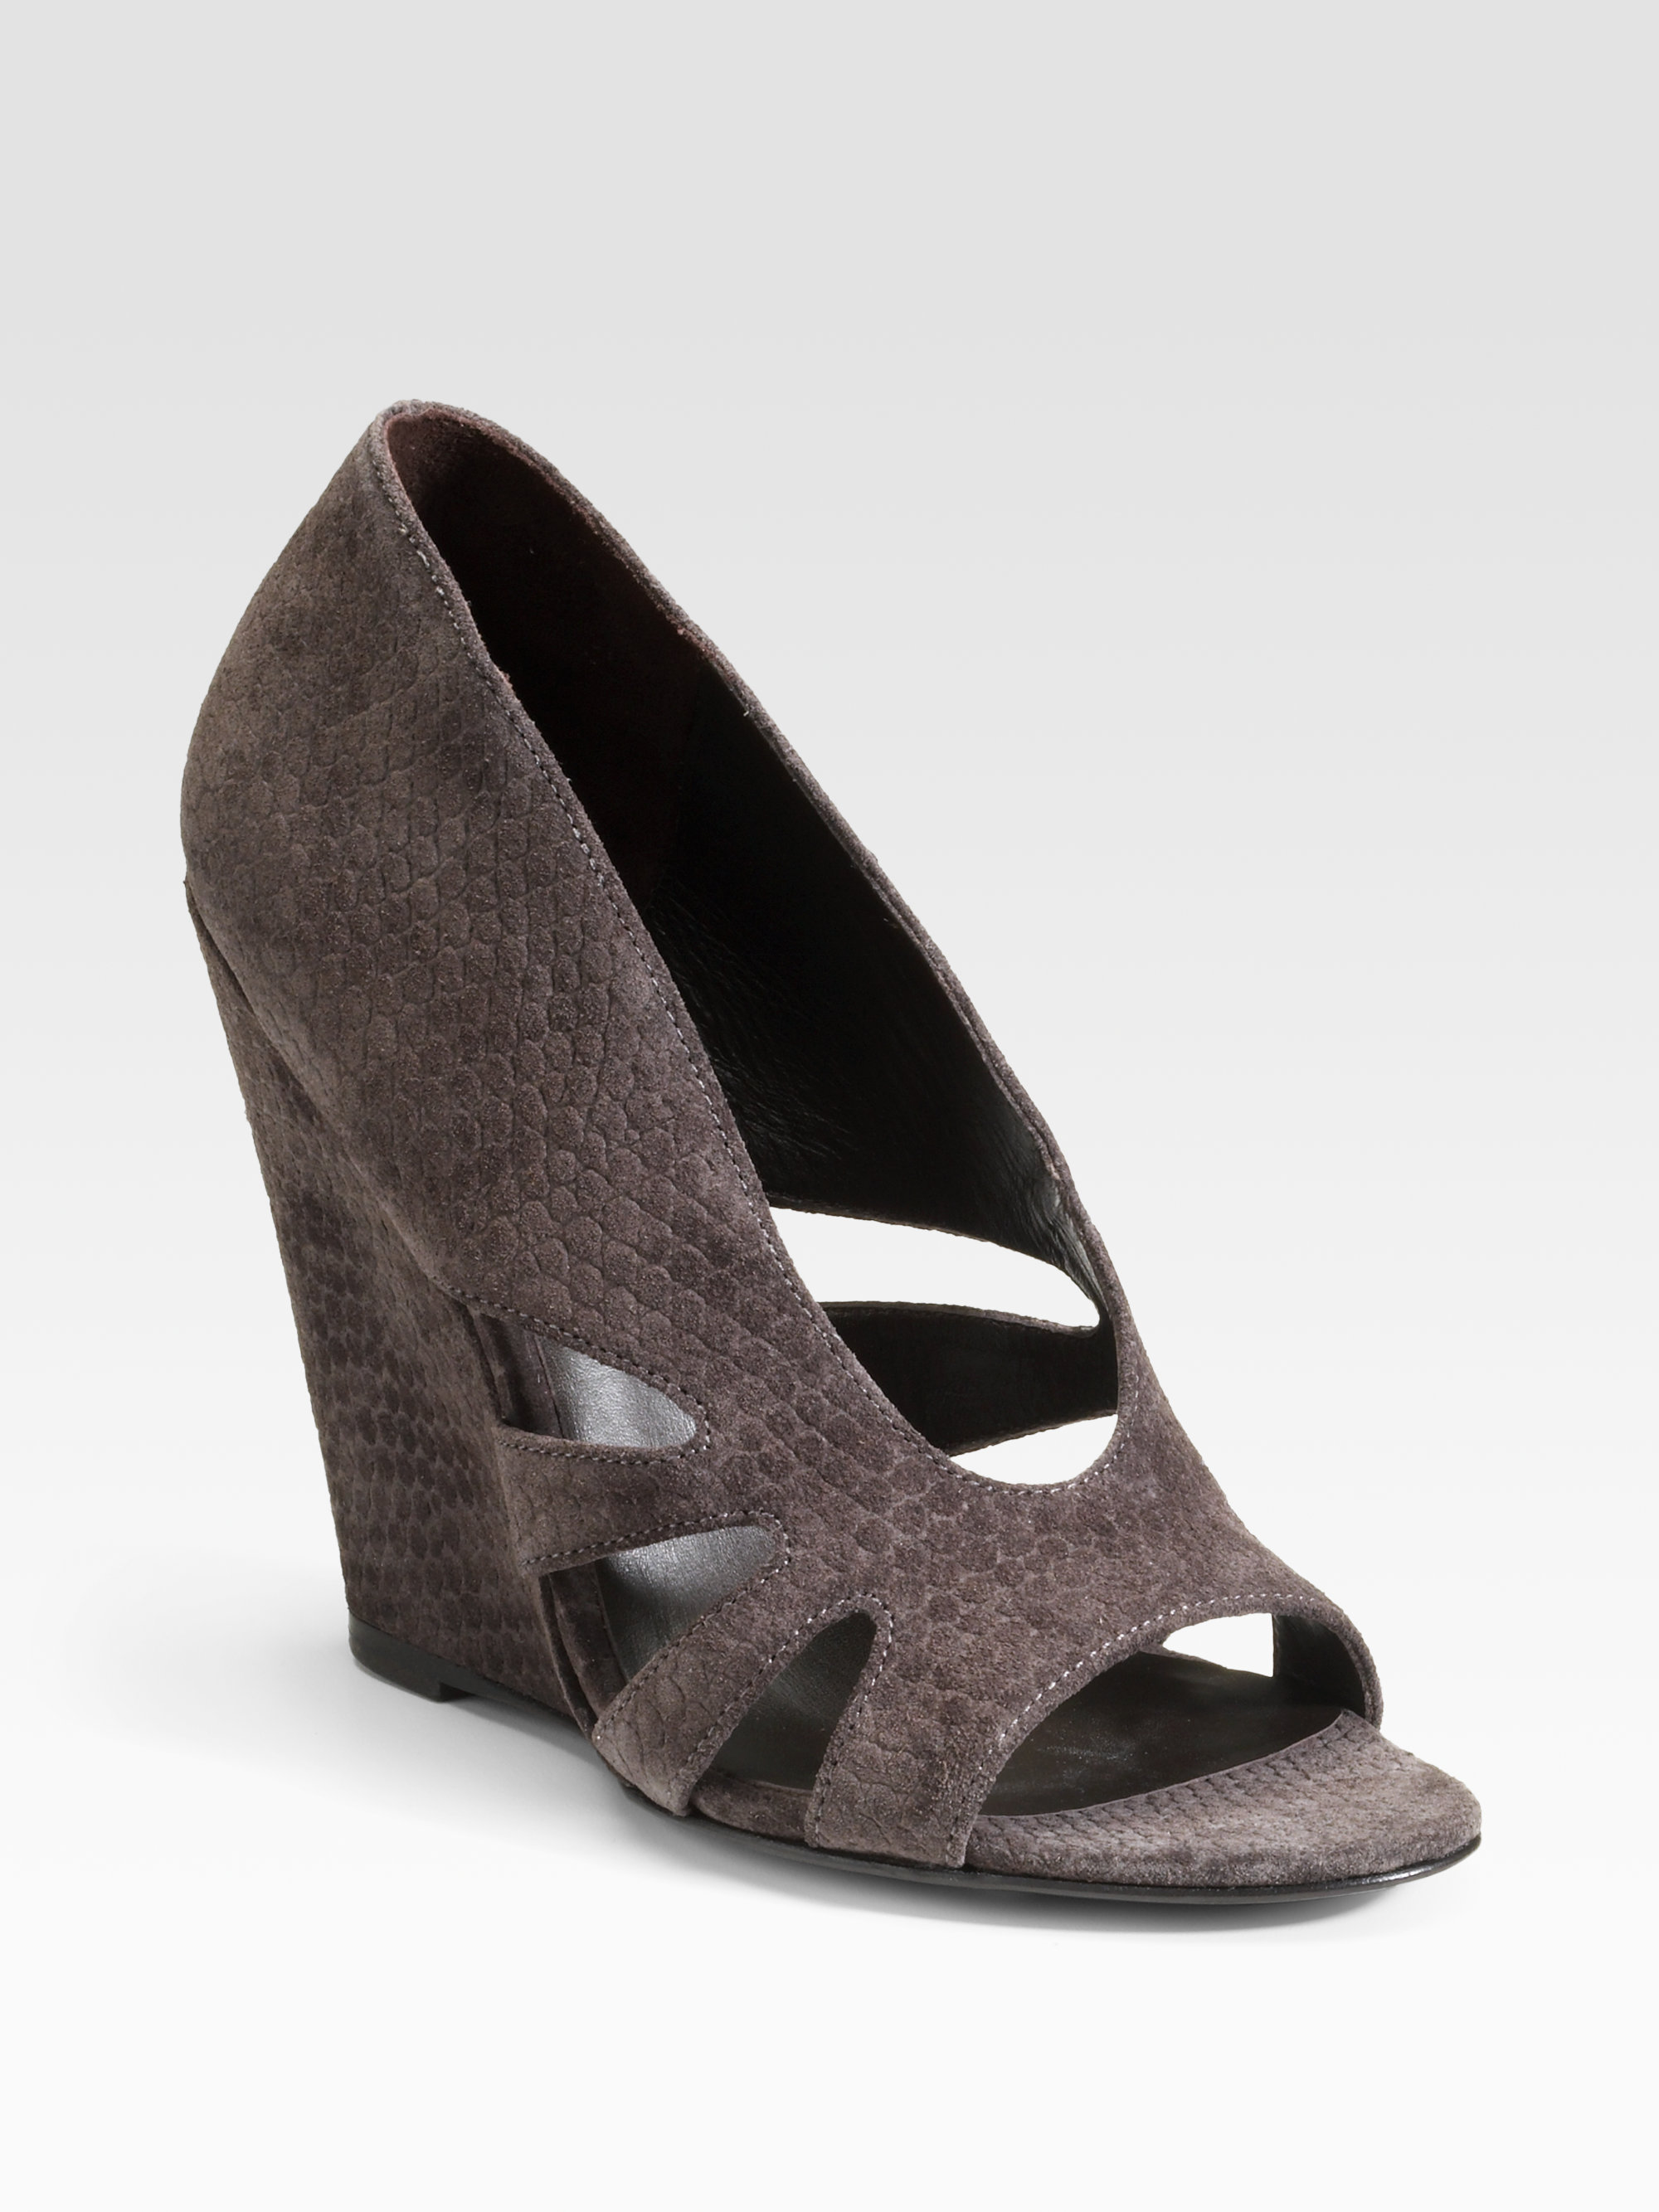 Elizabeth And James Suede Peeptoe Wedge Sandals In Gray